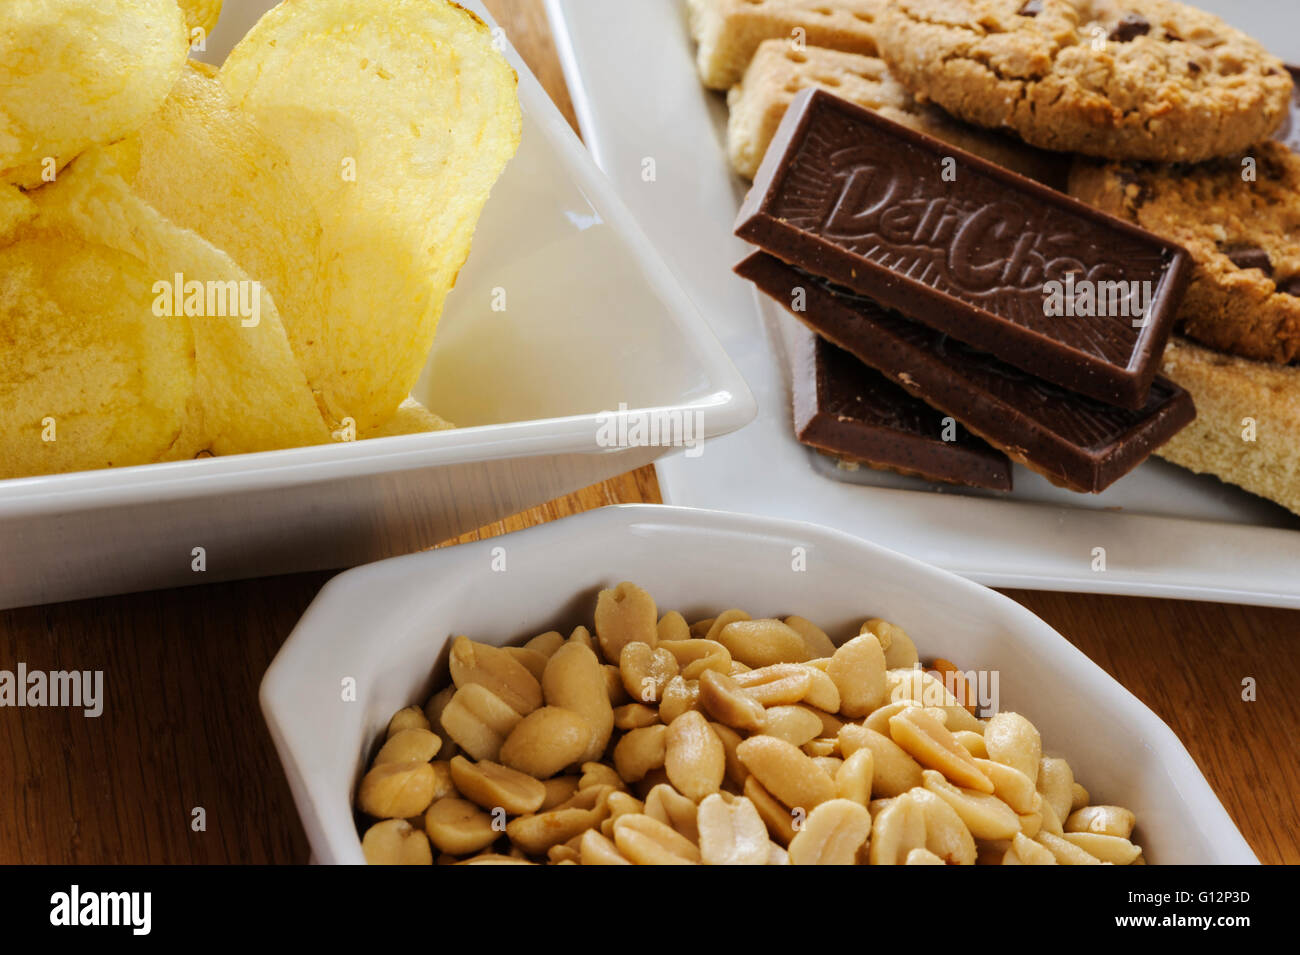 Bowls of peanuts, crisps and biscuits. - Stock Image